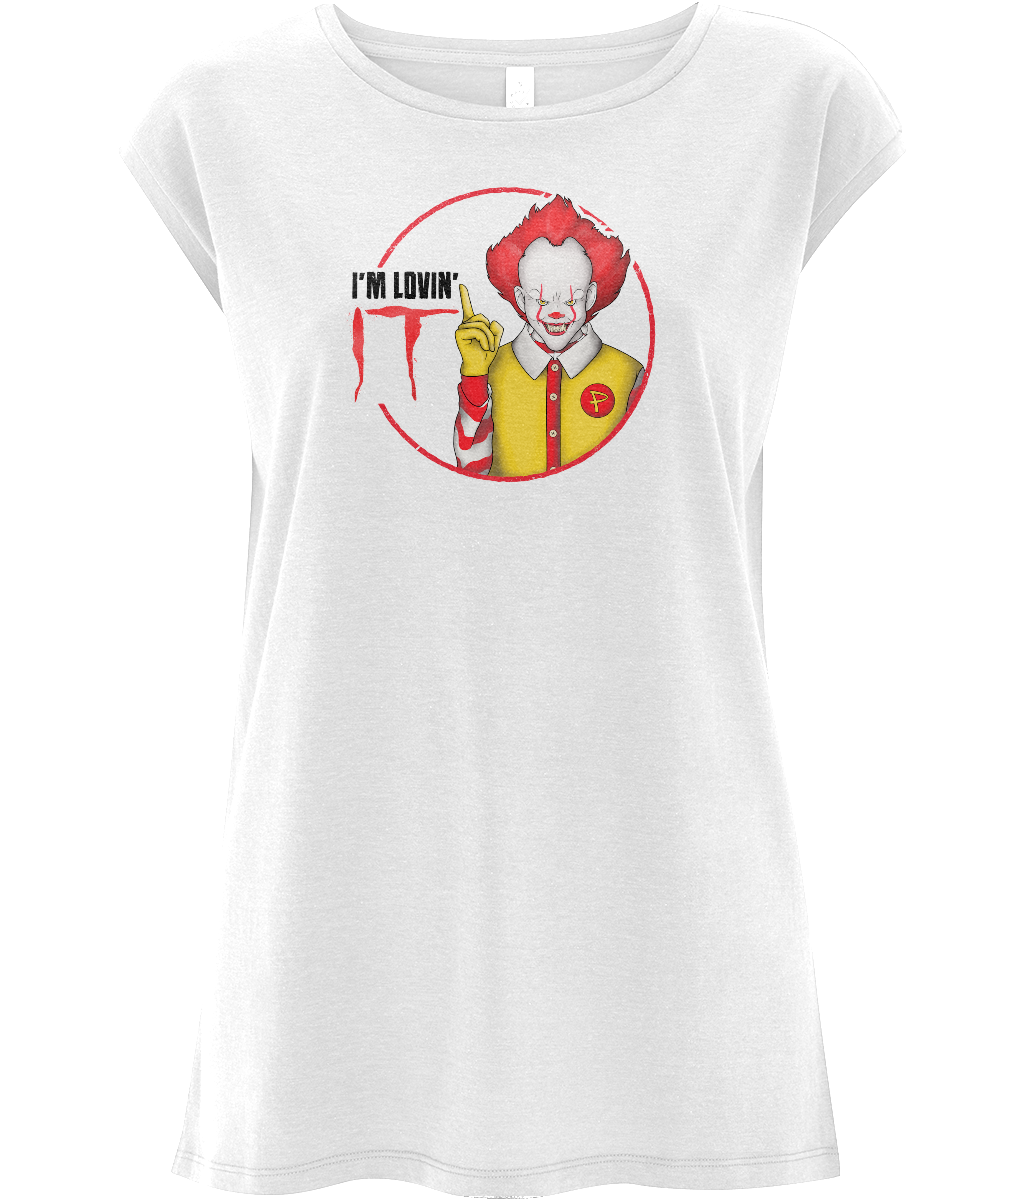 Pennywise Lovin' IT Women's Capped Sleeve Tee